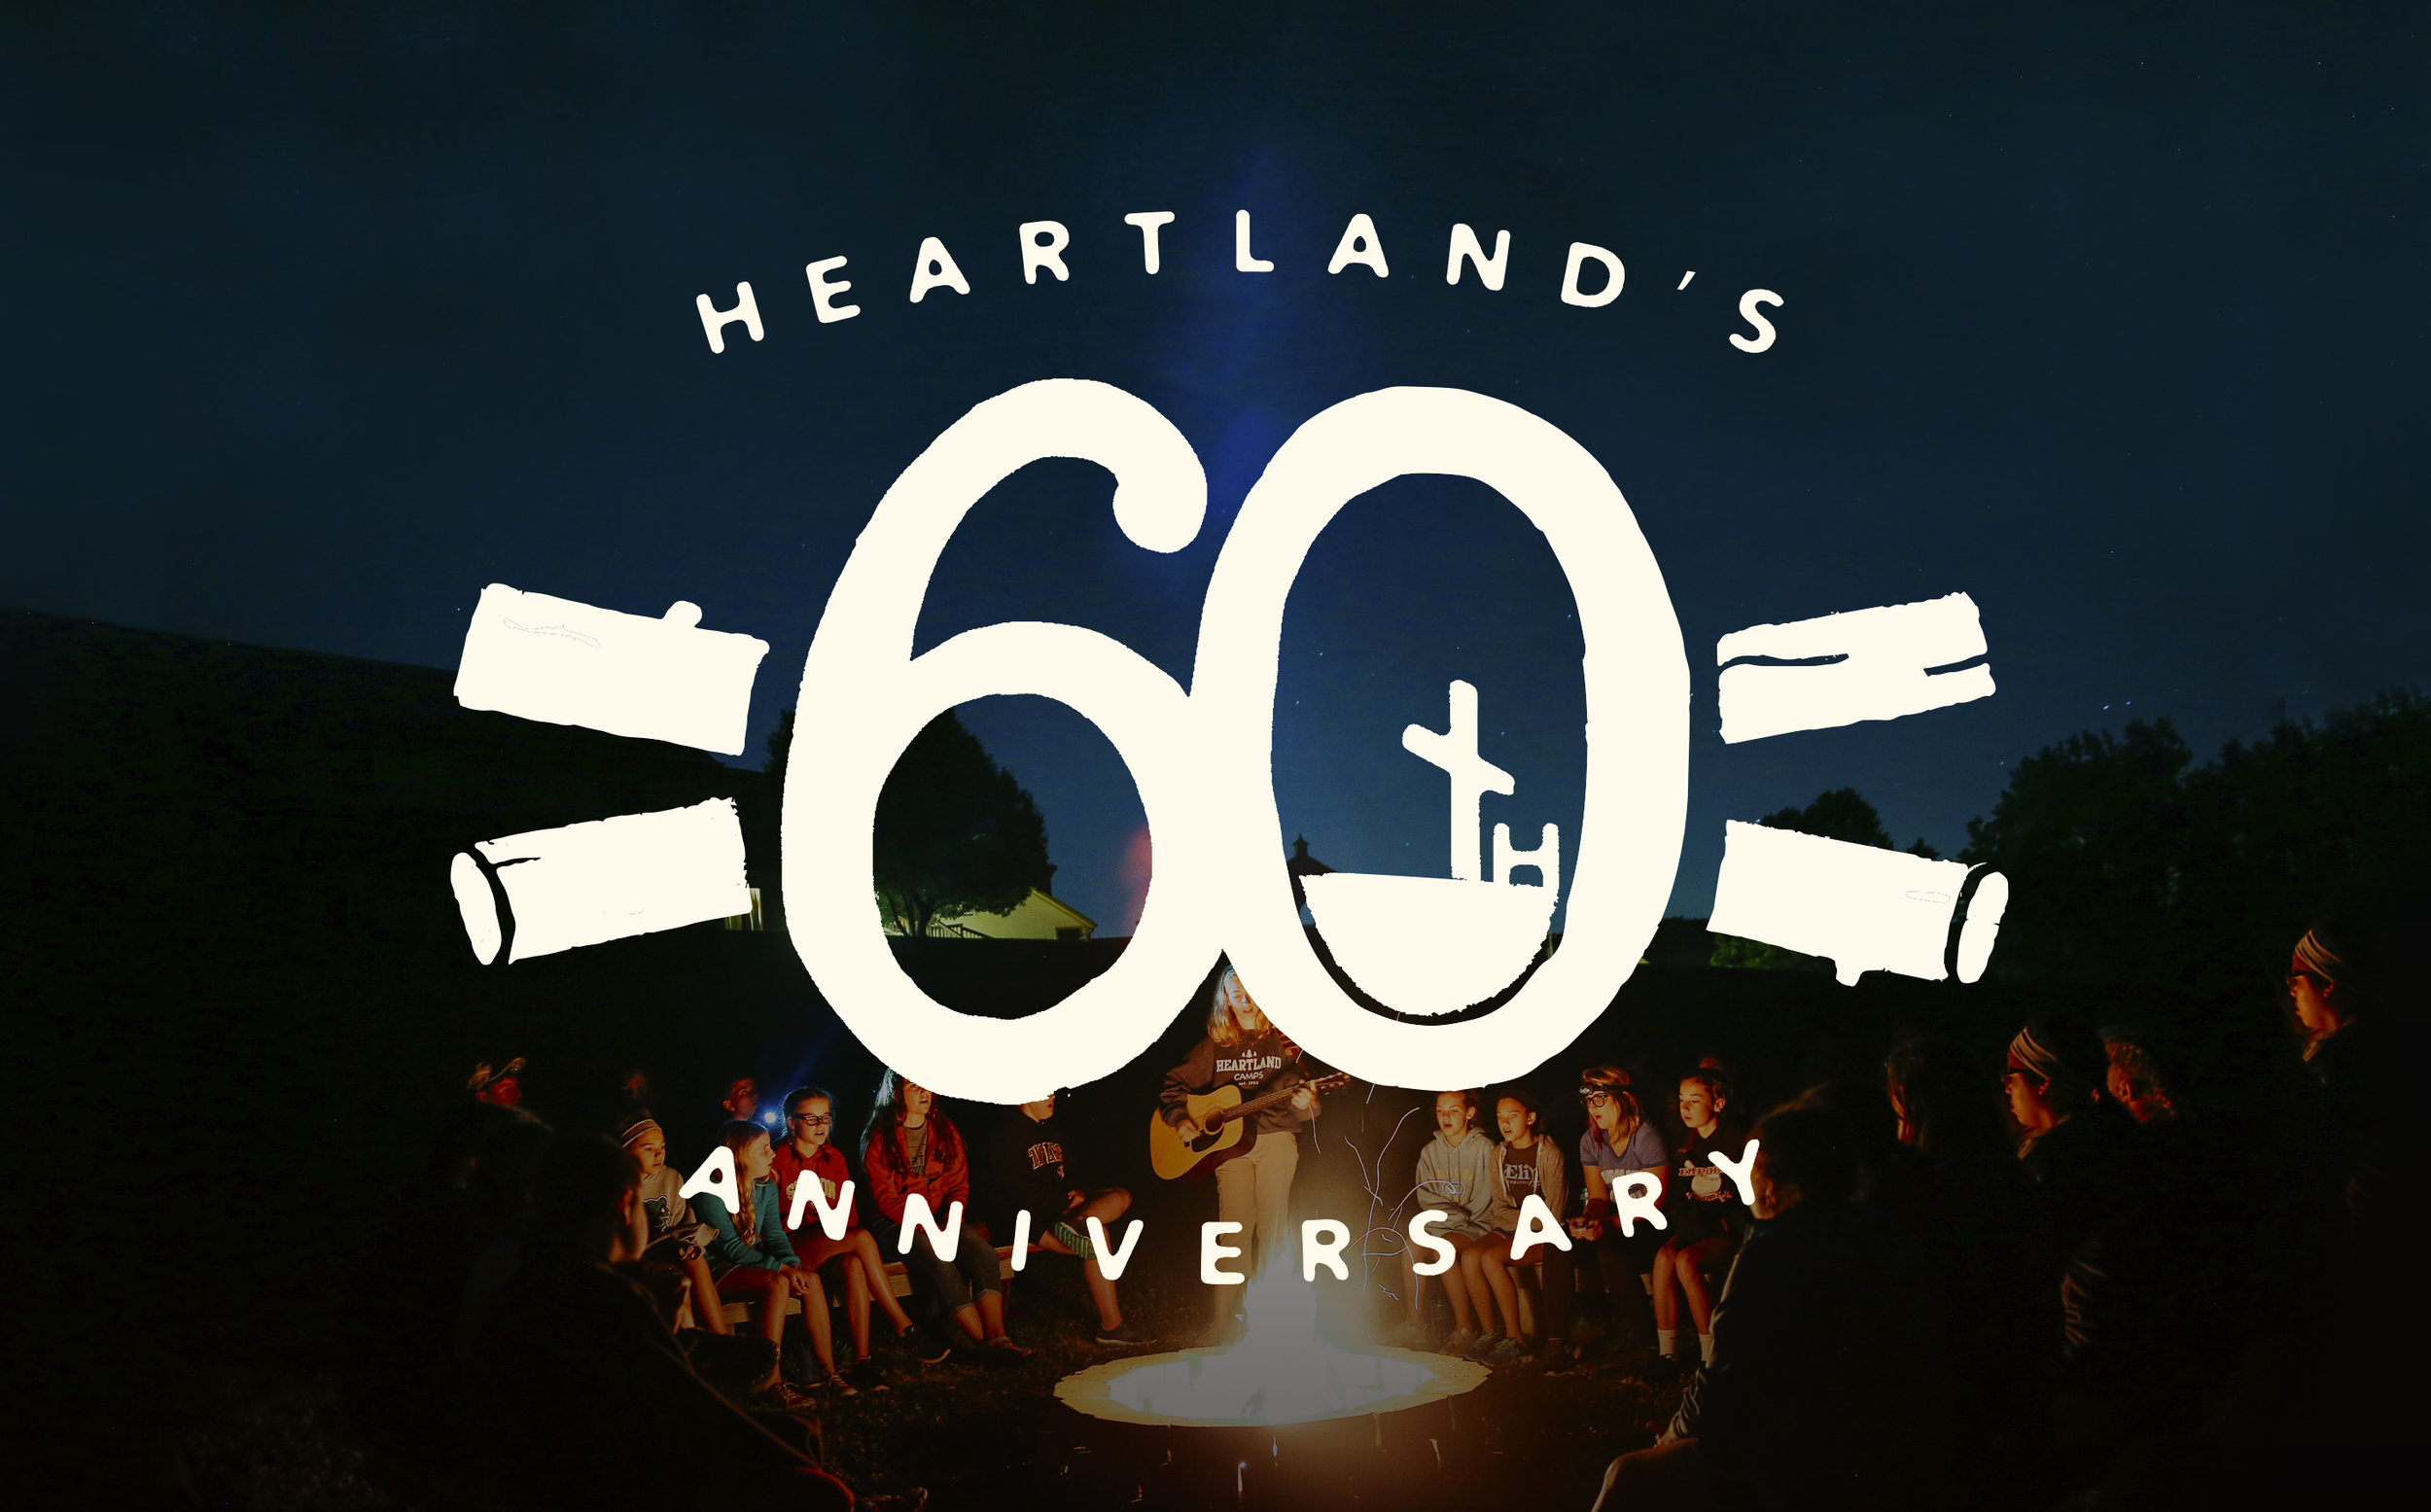 HEARTLAND'S TURNING 60! - We'd love for you to celebrate this milestone with us. Visit the link below to check out our big celebration weekend and more 60th events!